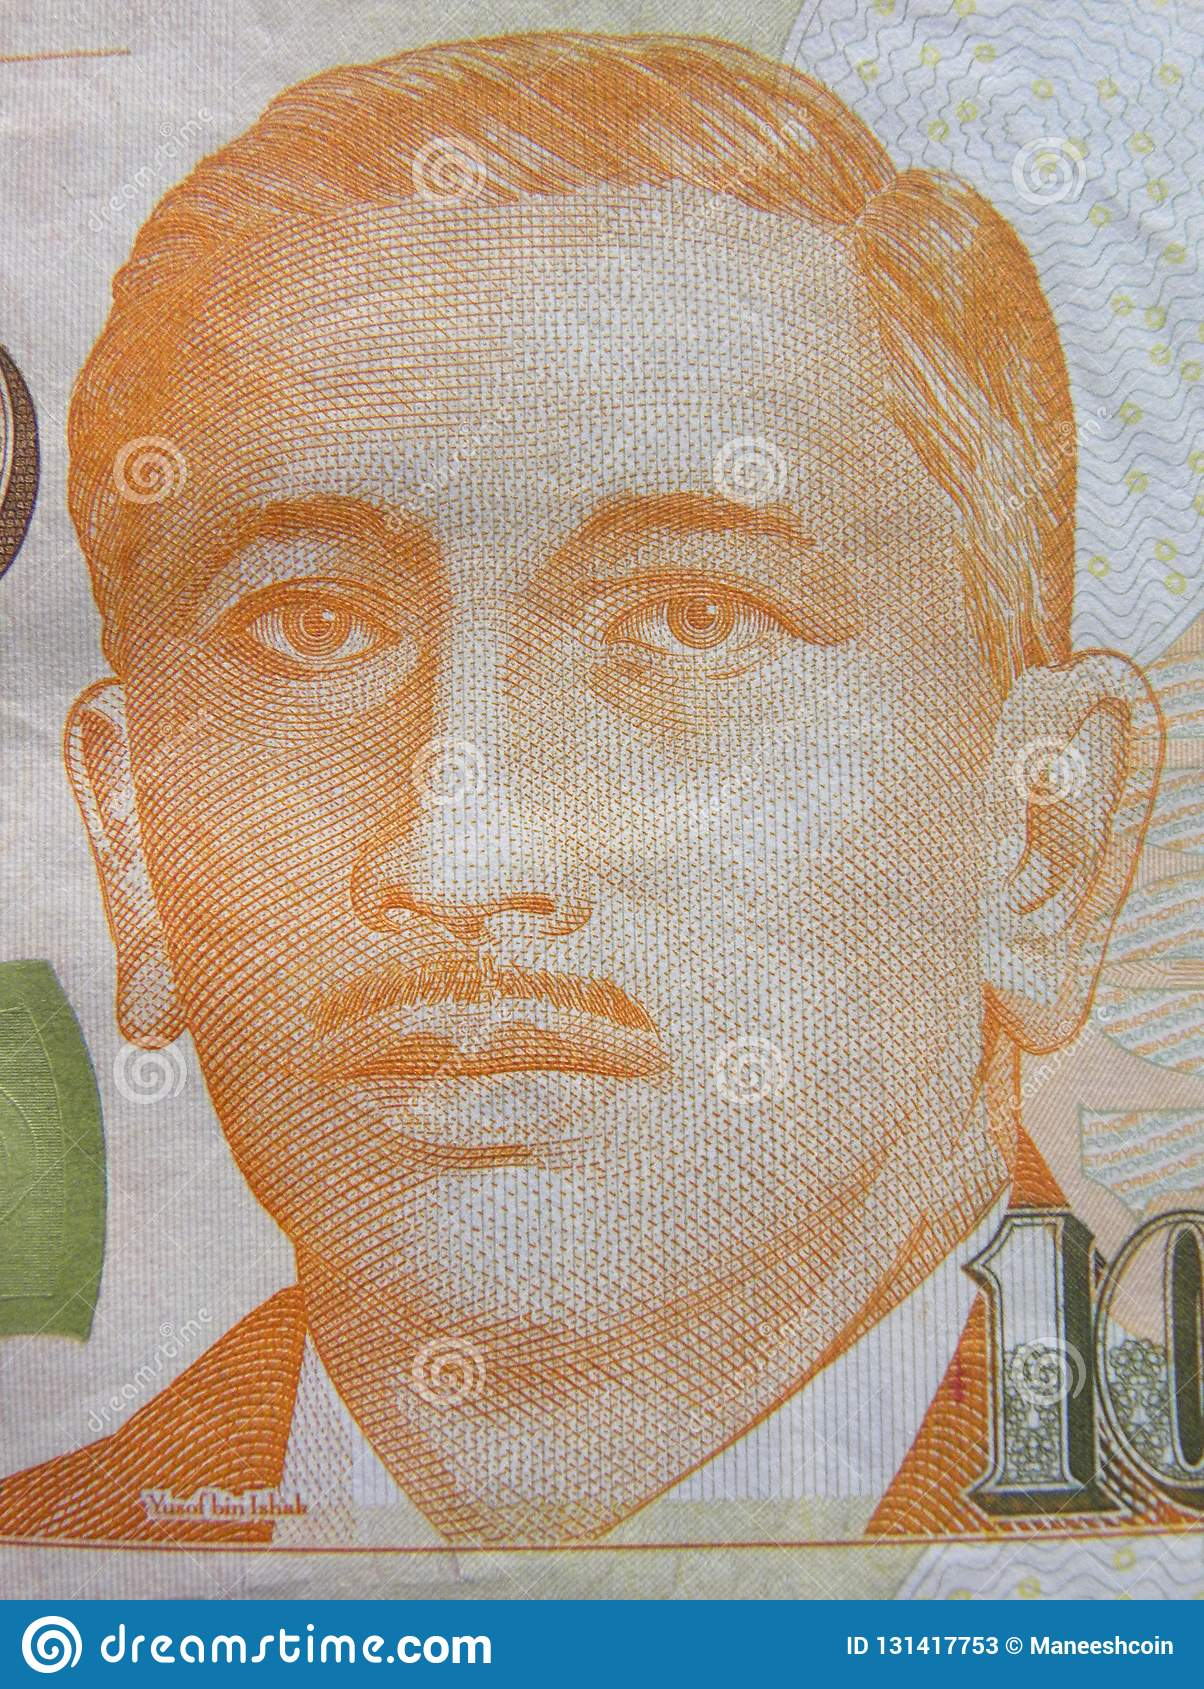 Yusof bin Ishak Portrait on 100 dollars banknote